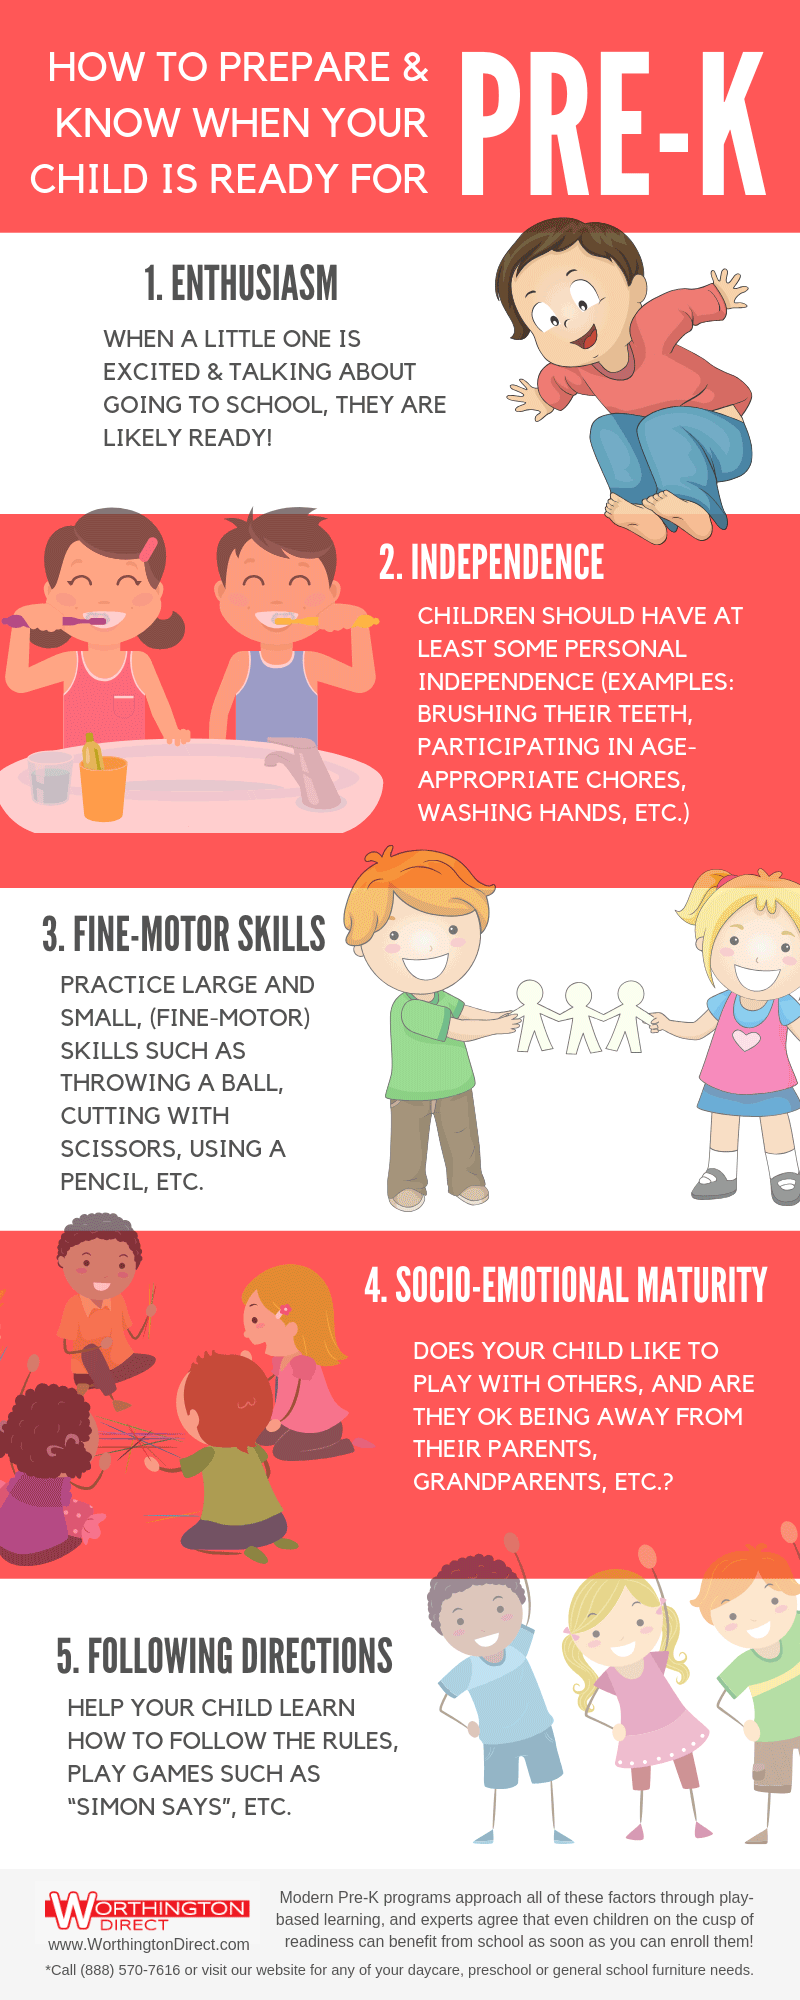 How to Prepare and Know When Your Child is Ready for Pre-K